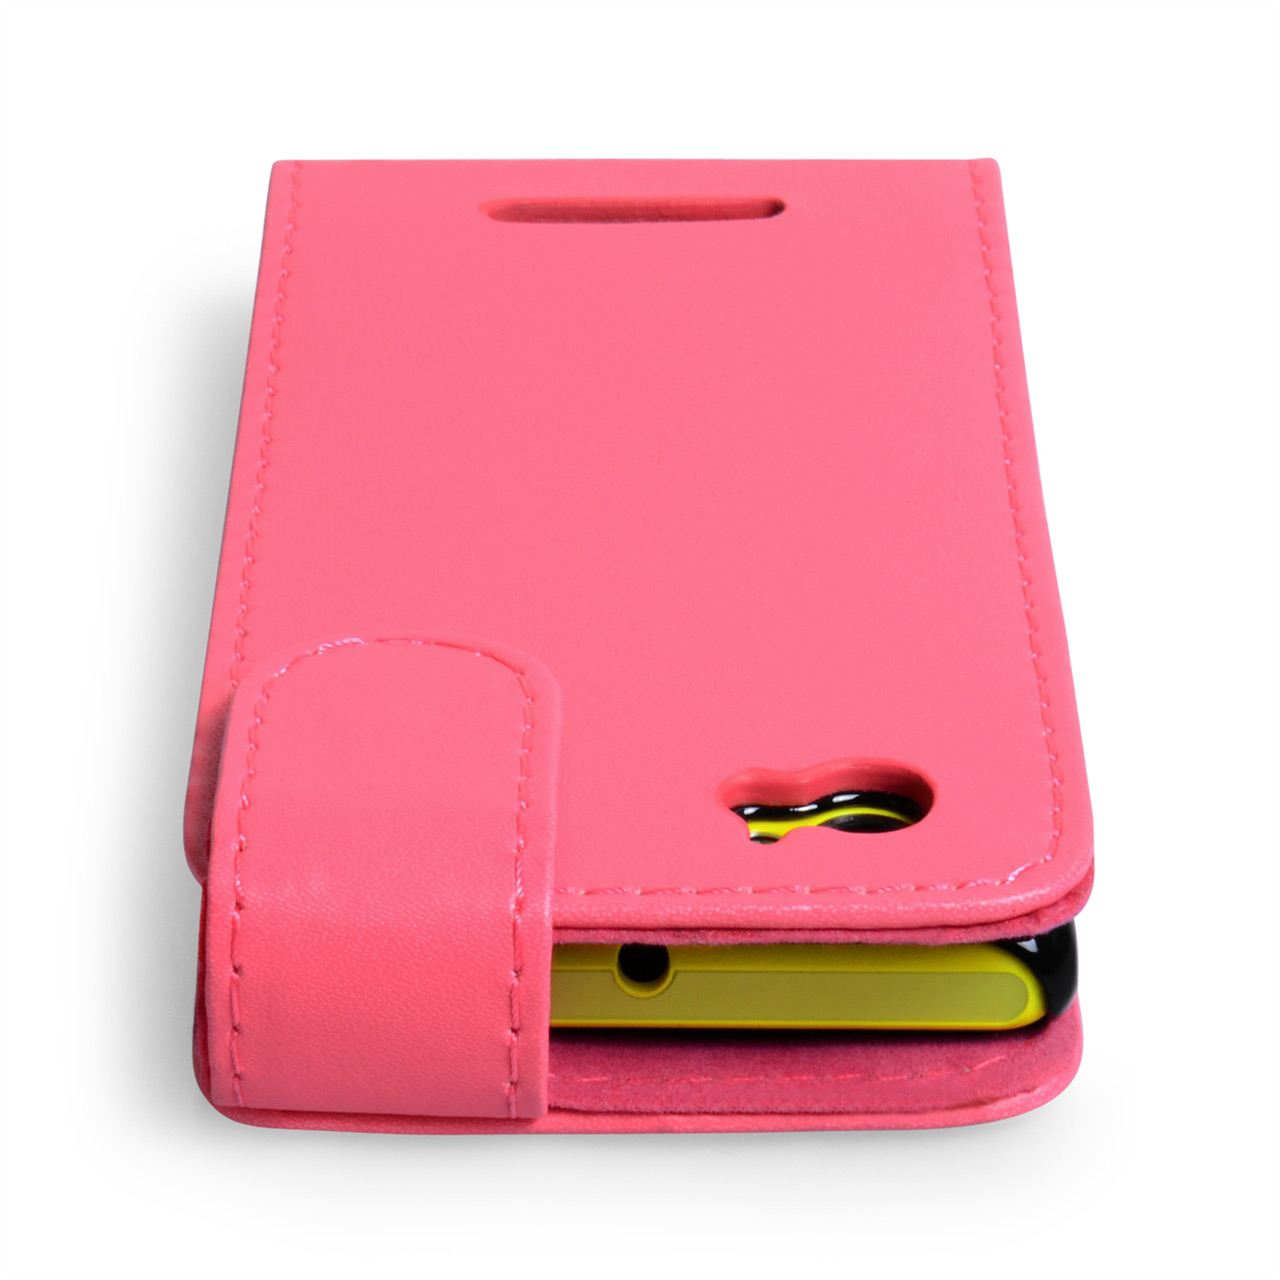 YouSave Accessories Sony Xperia M Leather Effect Flip Case - Hot Pink